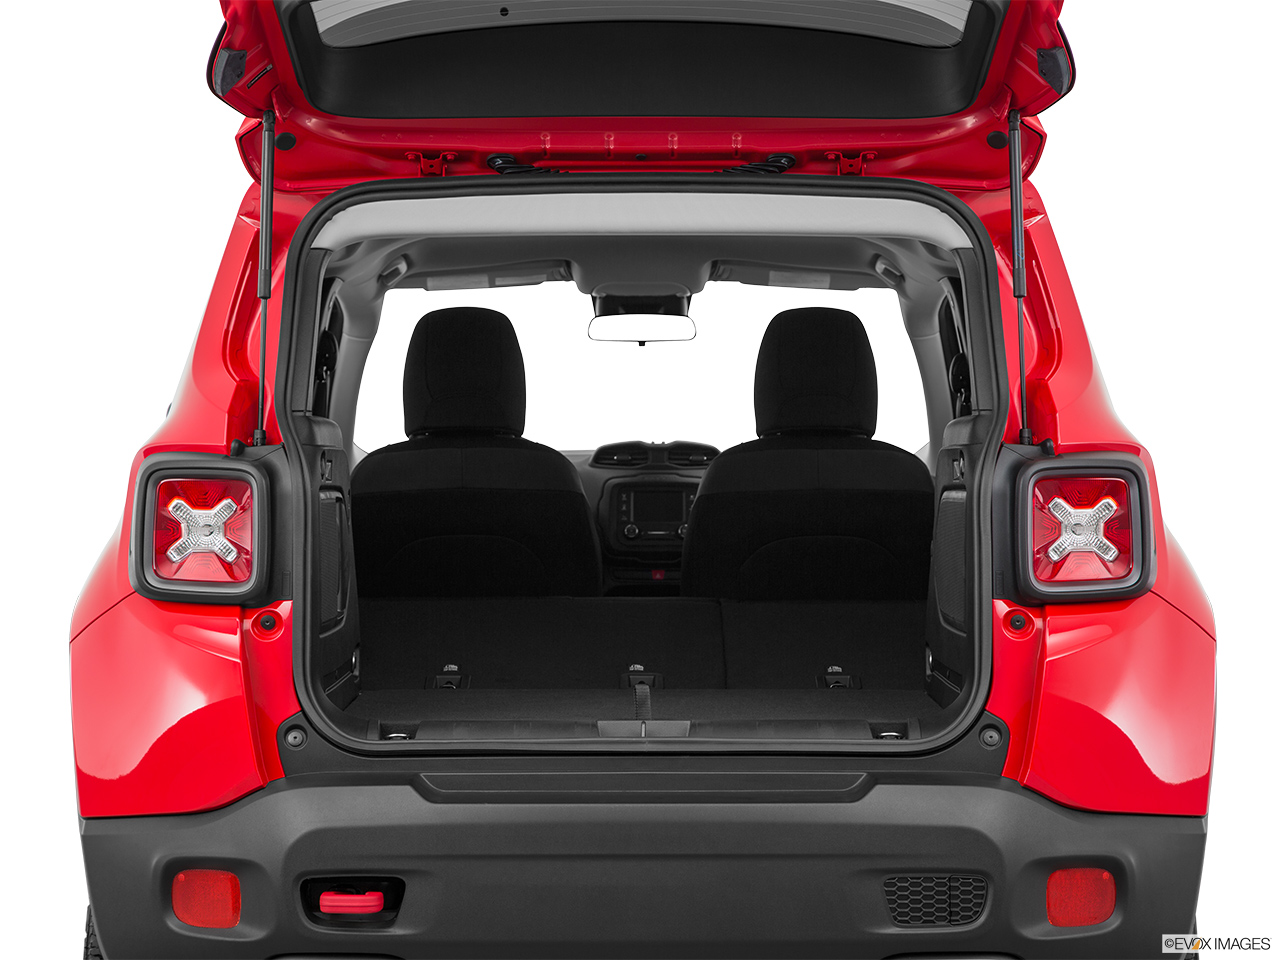 2015 Jeep Renegade 4WD 4 Door Trailhawk - Front angle view 2015 ...